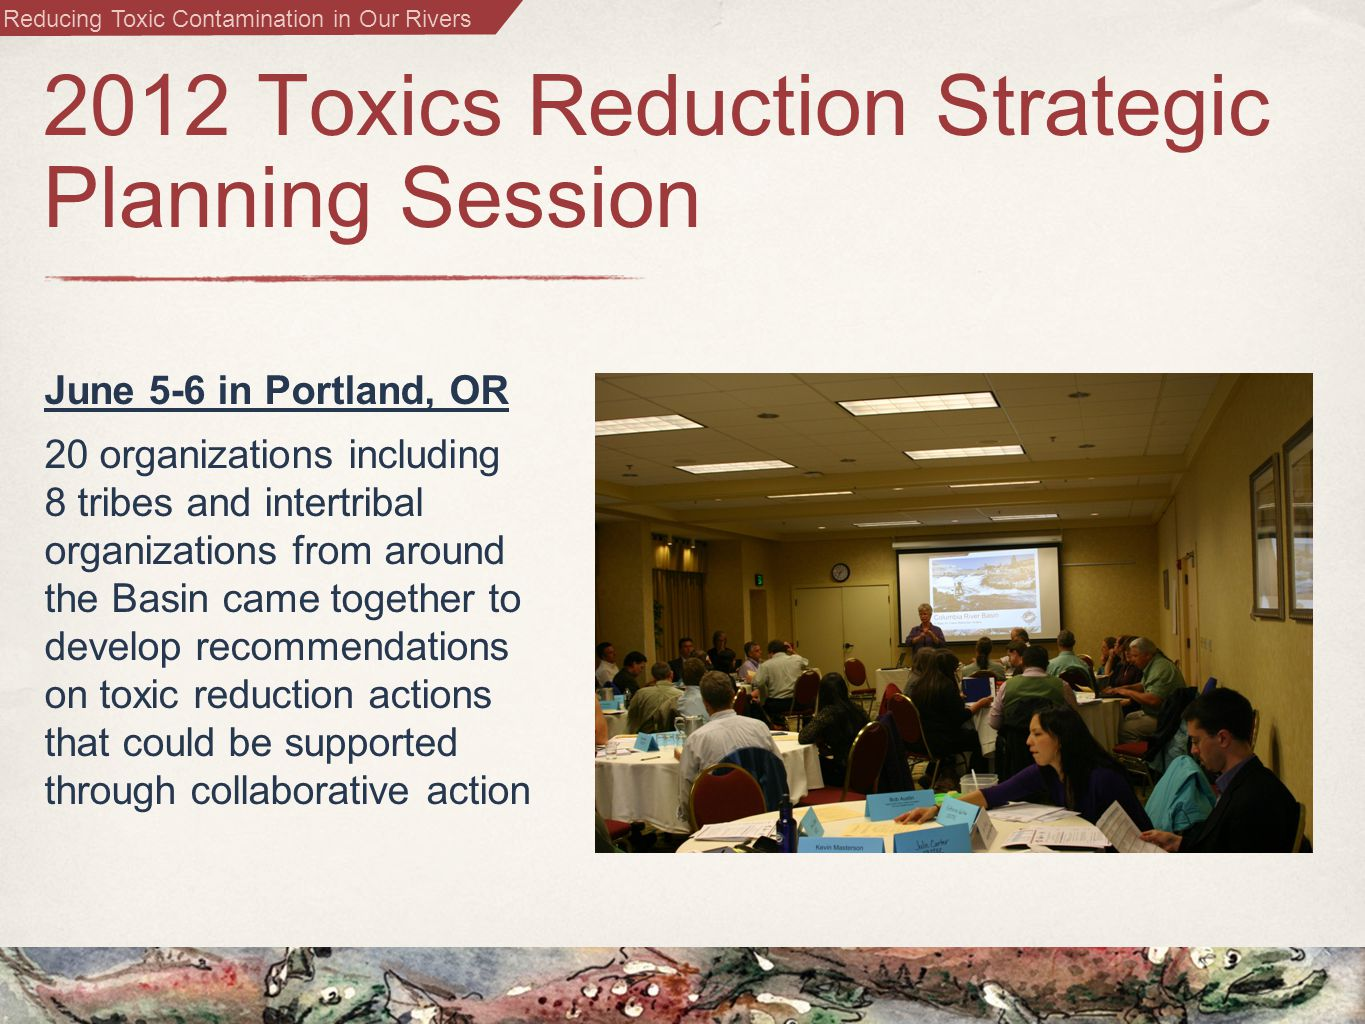 Reducing Toxic Contamination in Our Rivers 2012 Toxics Reduction Strategic Planning Session June 5-6 in Portland, OR 20 organizations including 8 tribes and intertribal organizations from around the Basin came together to develop recommendations on toxic reduction actions that could be supported through collaborative action